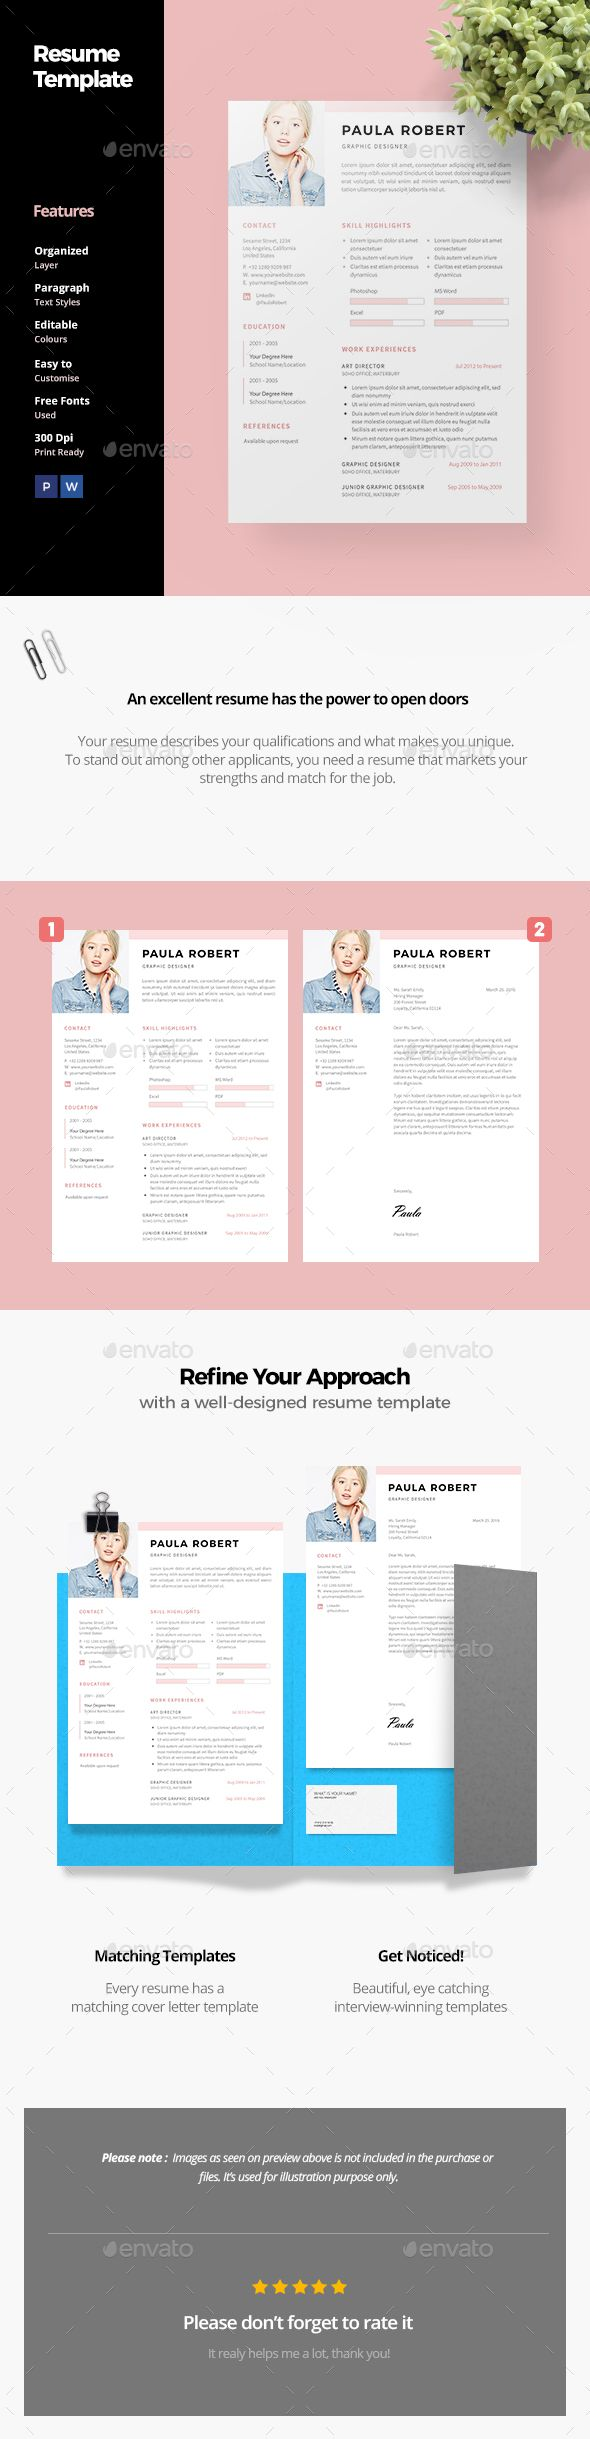 nurse practitioner cover letter%0A Resume Template PSD  MS Word  A  and US Letter Size